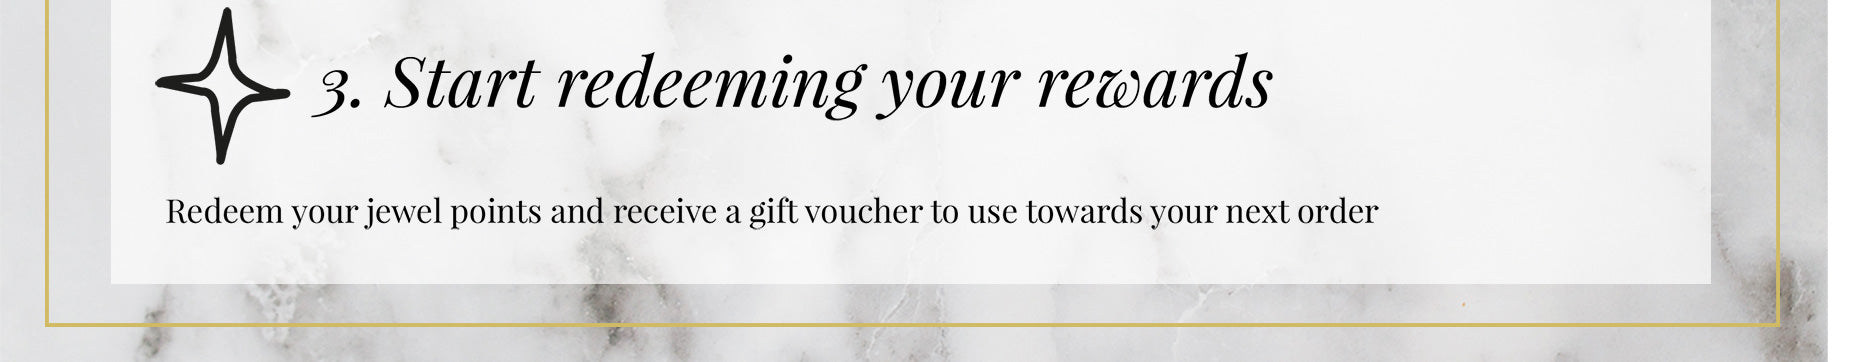 Redeem your jewel points and receive a gift voucher to use towards your next order